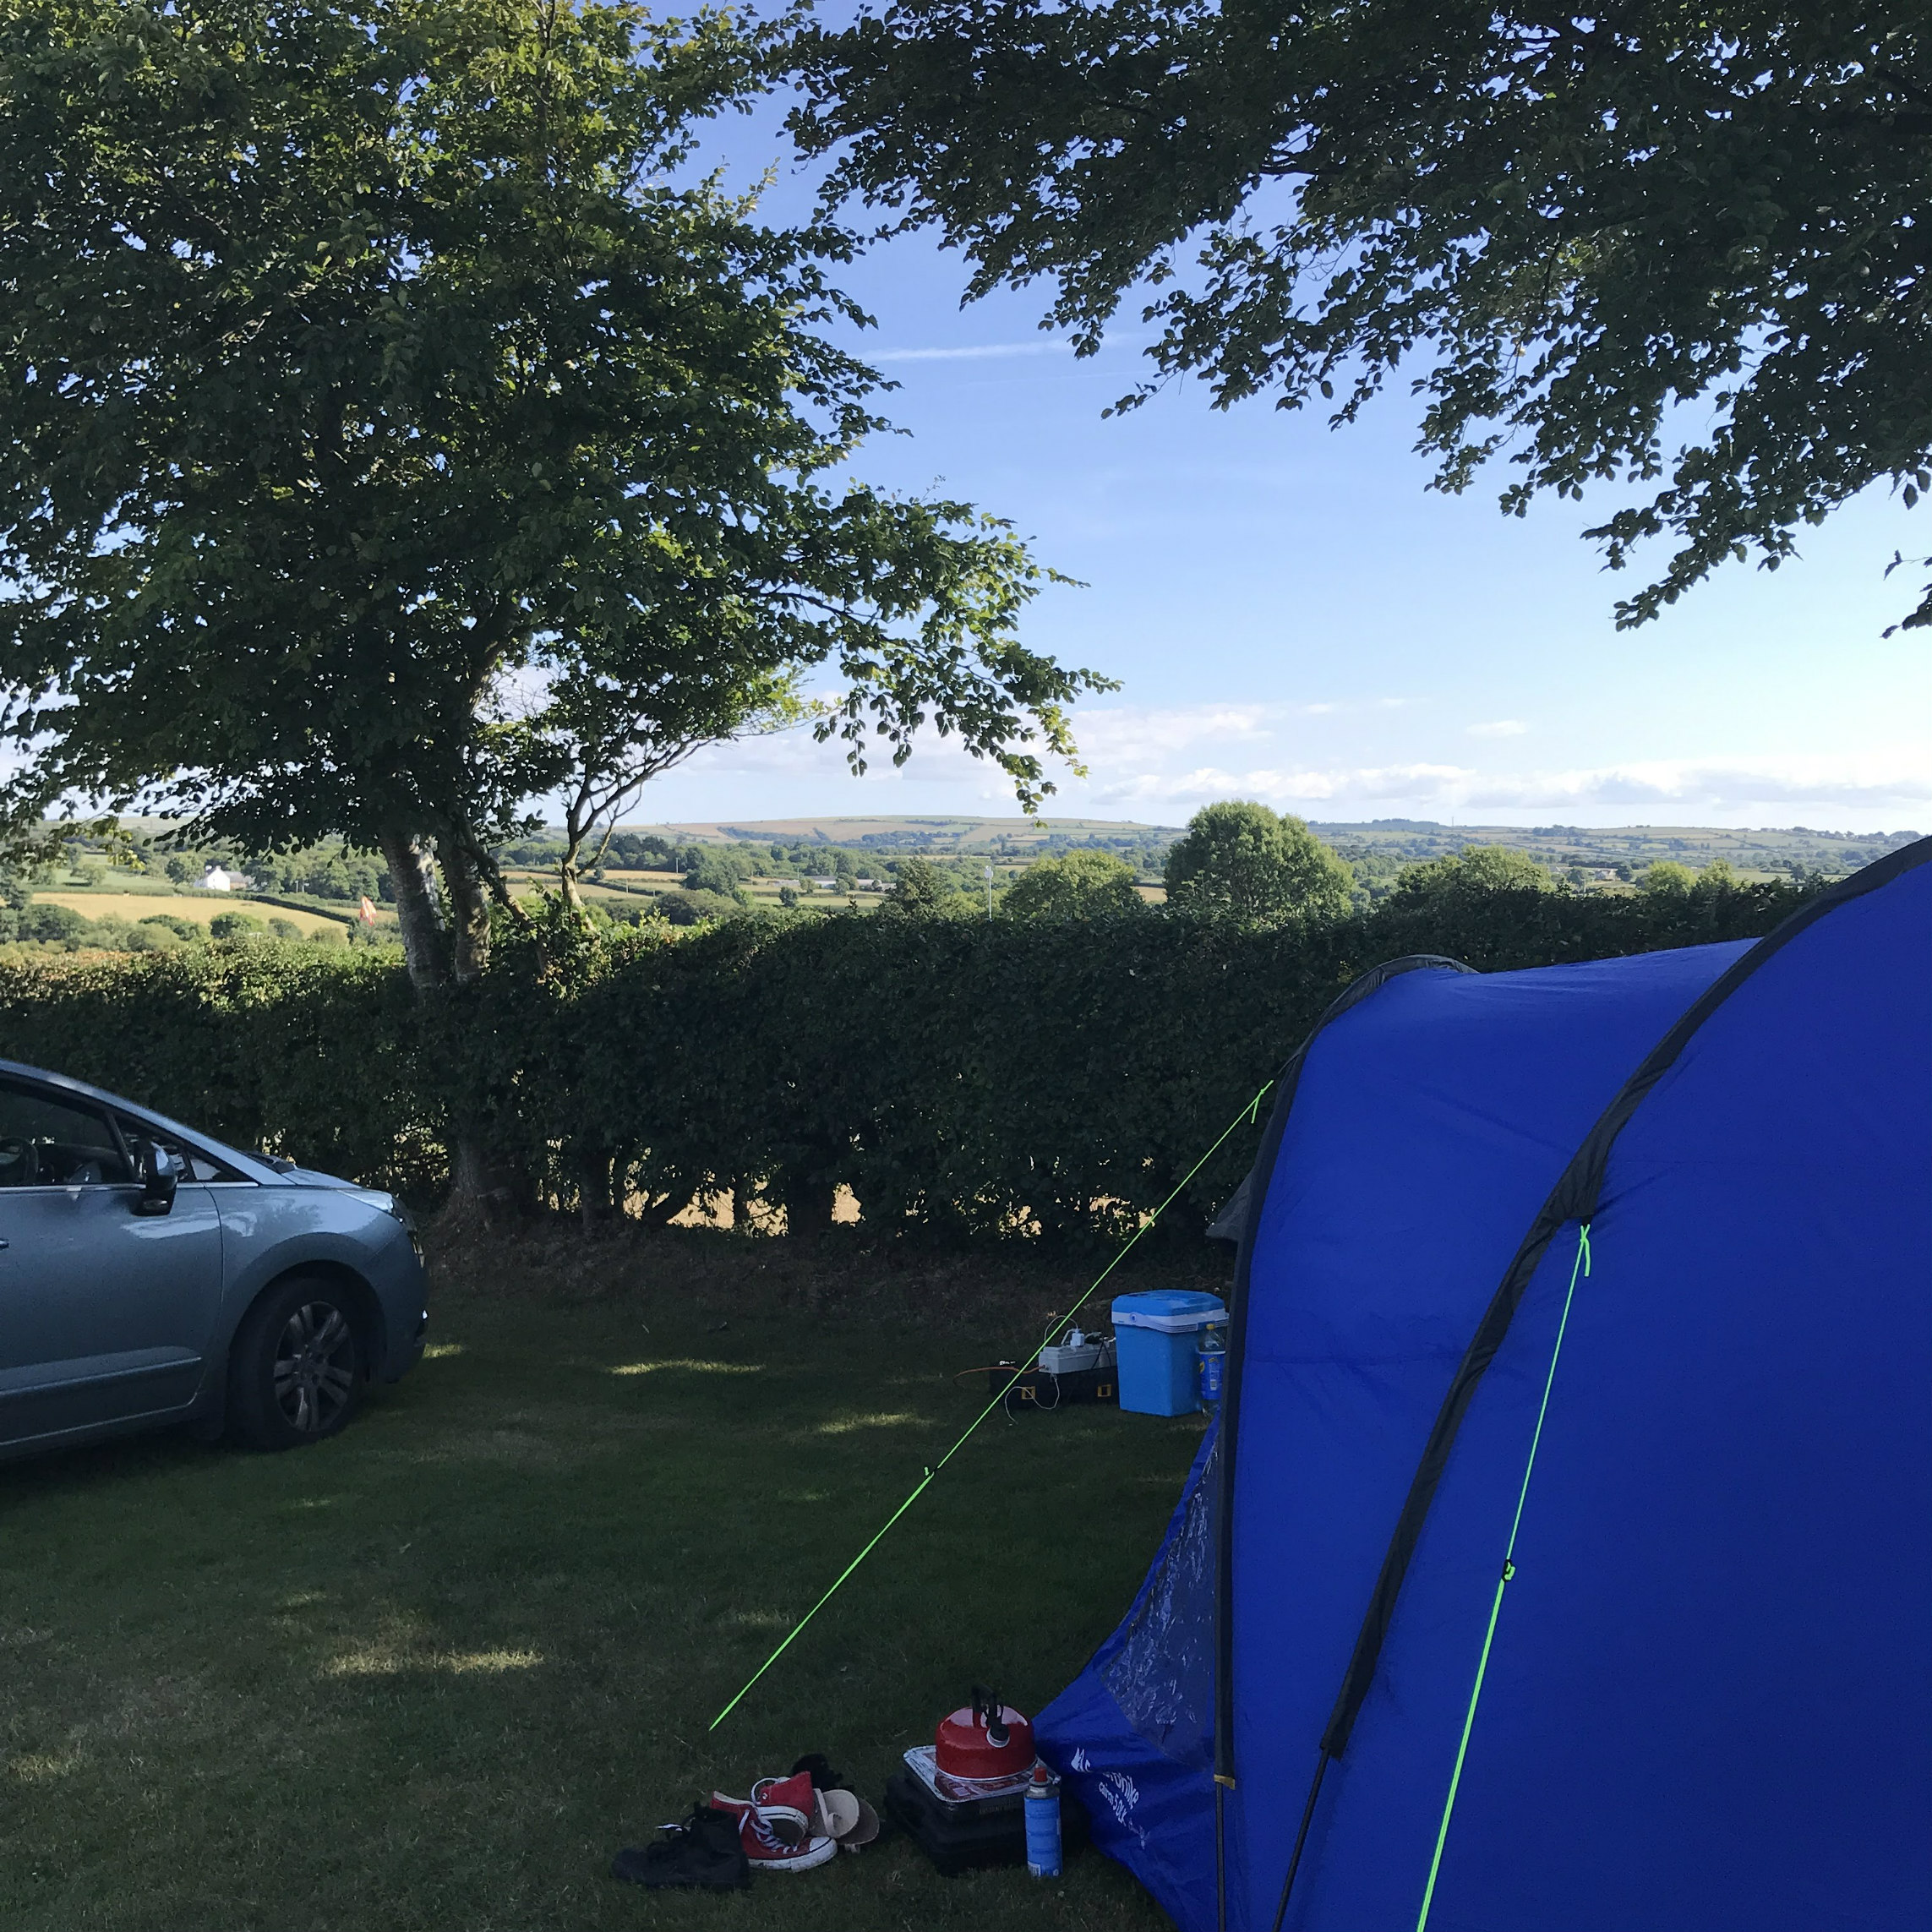 09a949c441d Cardigan Bay Camping and Caravanning Club Site